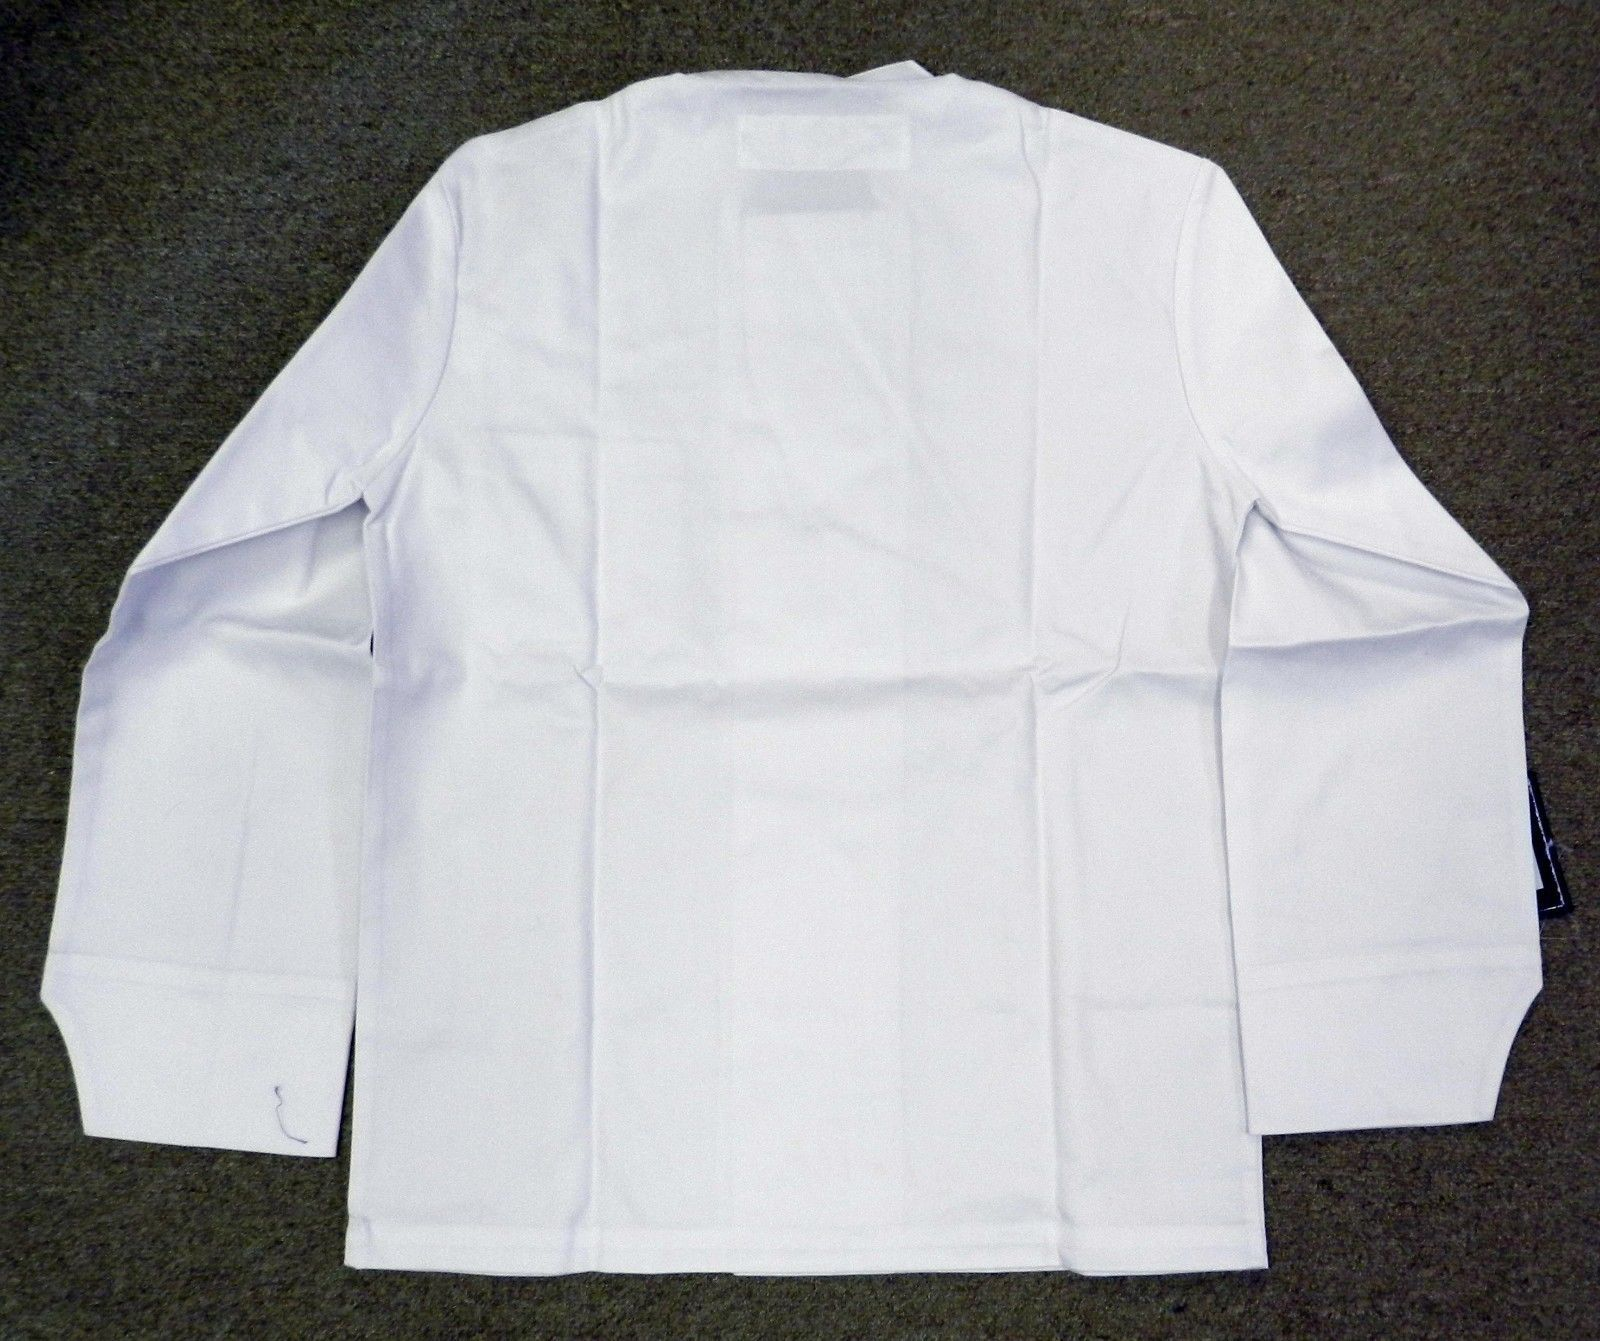 Dickies Chef Coat Jacket CW070305B Restaurant Button Front White Uniform 2X New